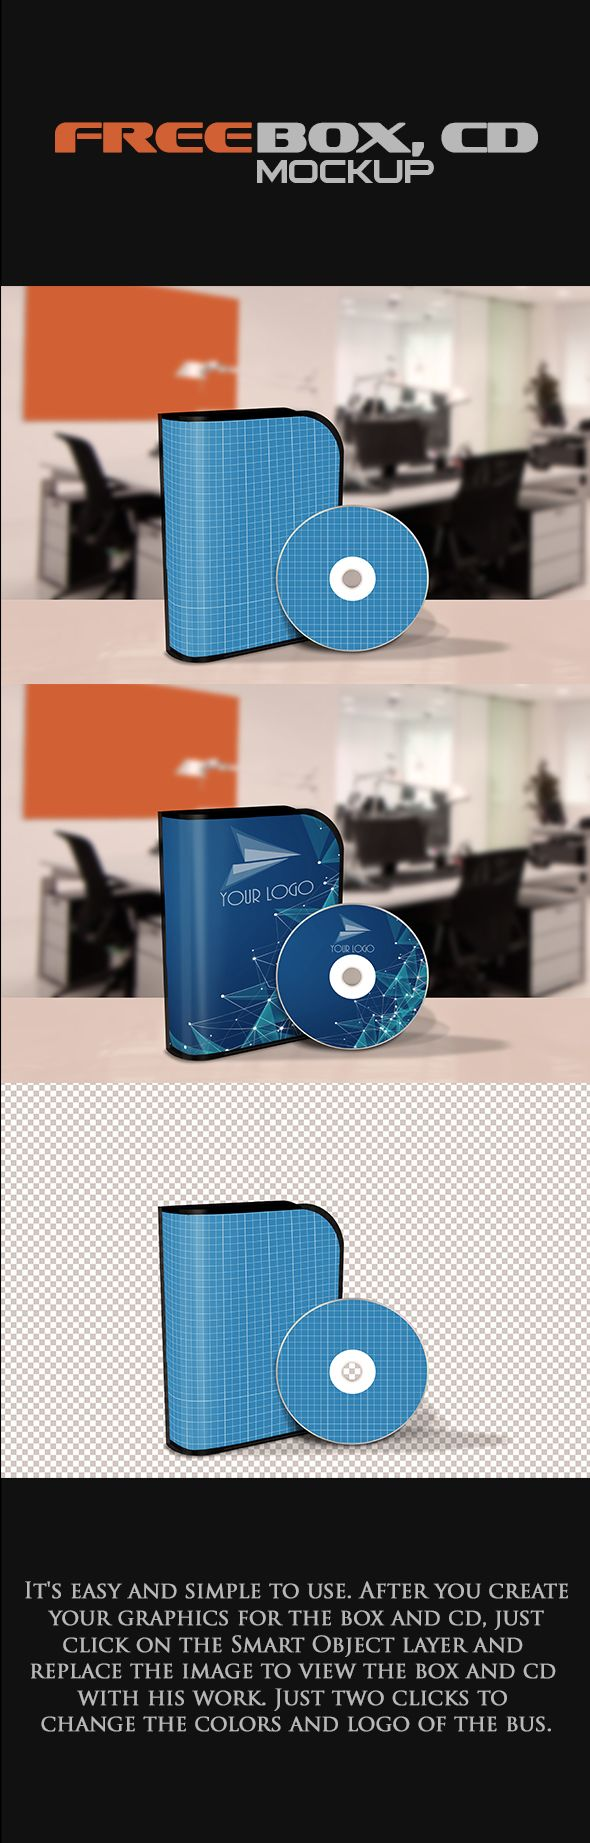 Free Mock-up Box Software and CD (65.85 MB) By Rogerio Marcons on Behance | #free #photoshop #mockup #box #cd #software